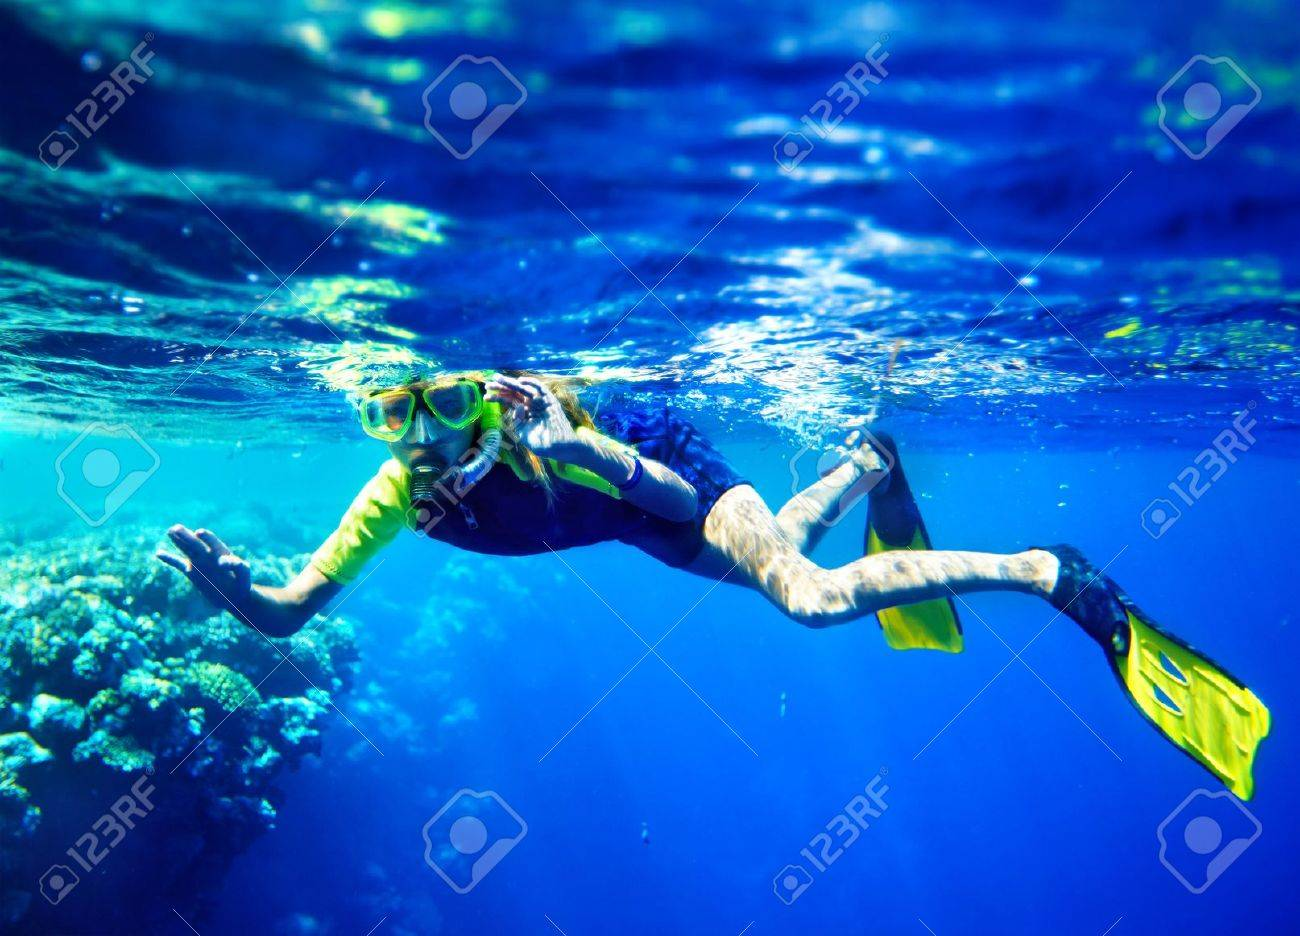 Child scuba diver with group coral fish in  blue water. Stock Photo - 15231411